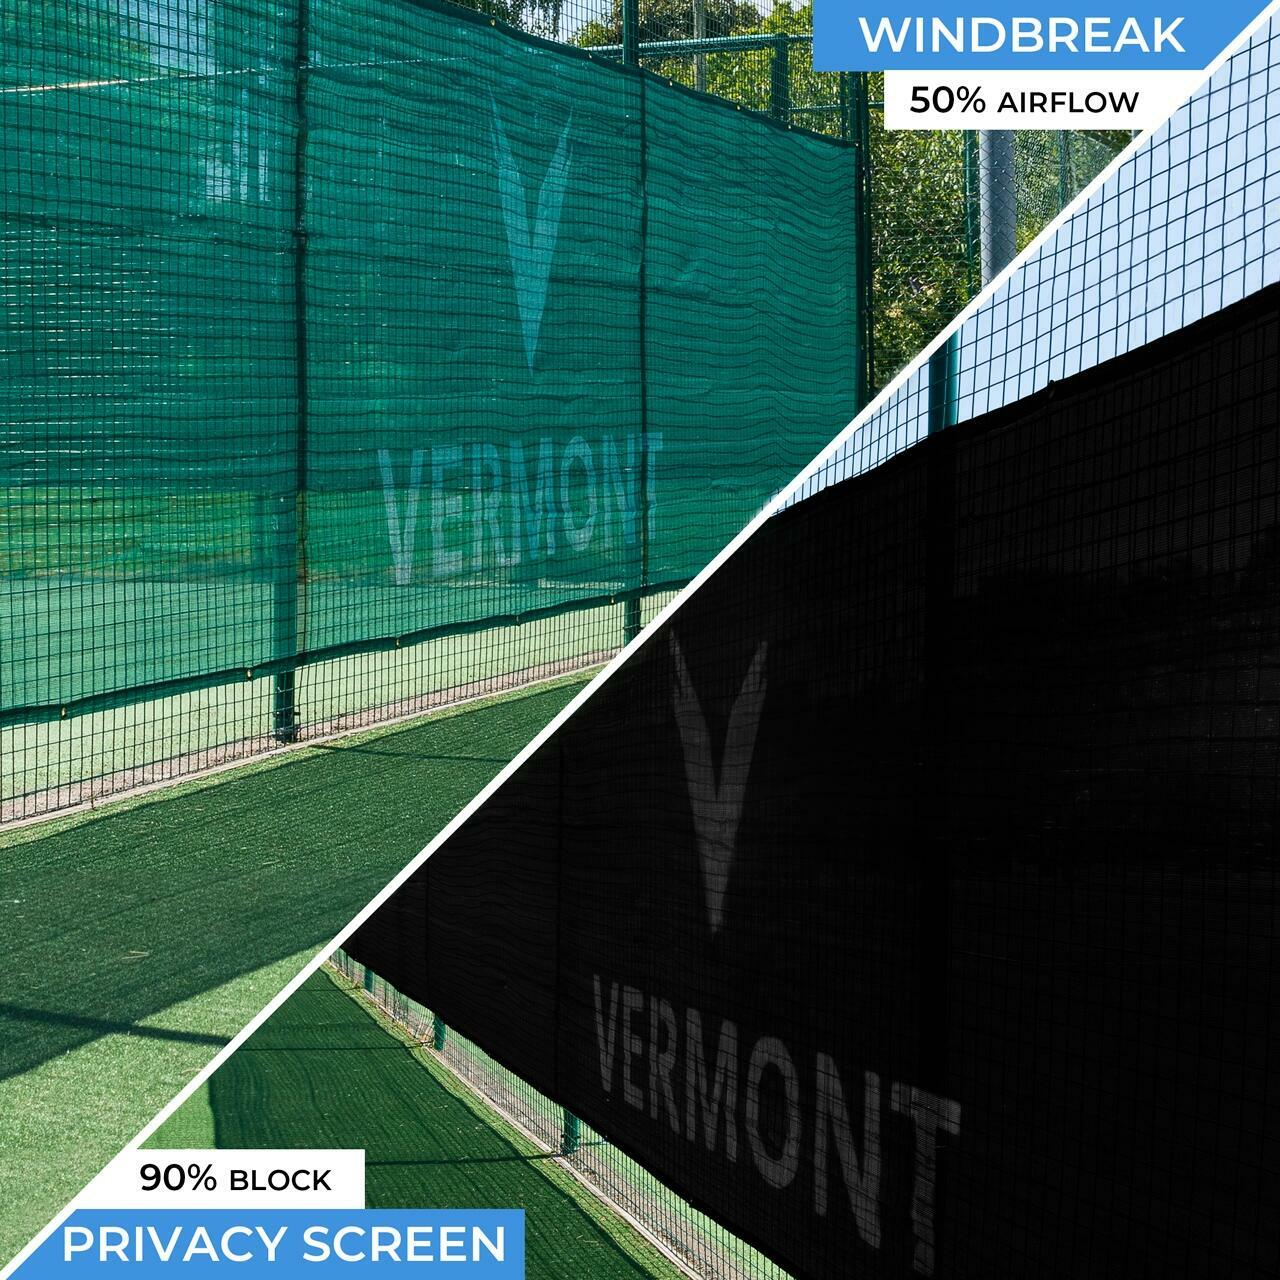 Tennis Court Windbreaks & Privacy Screens